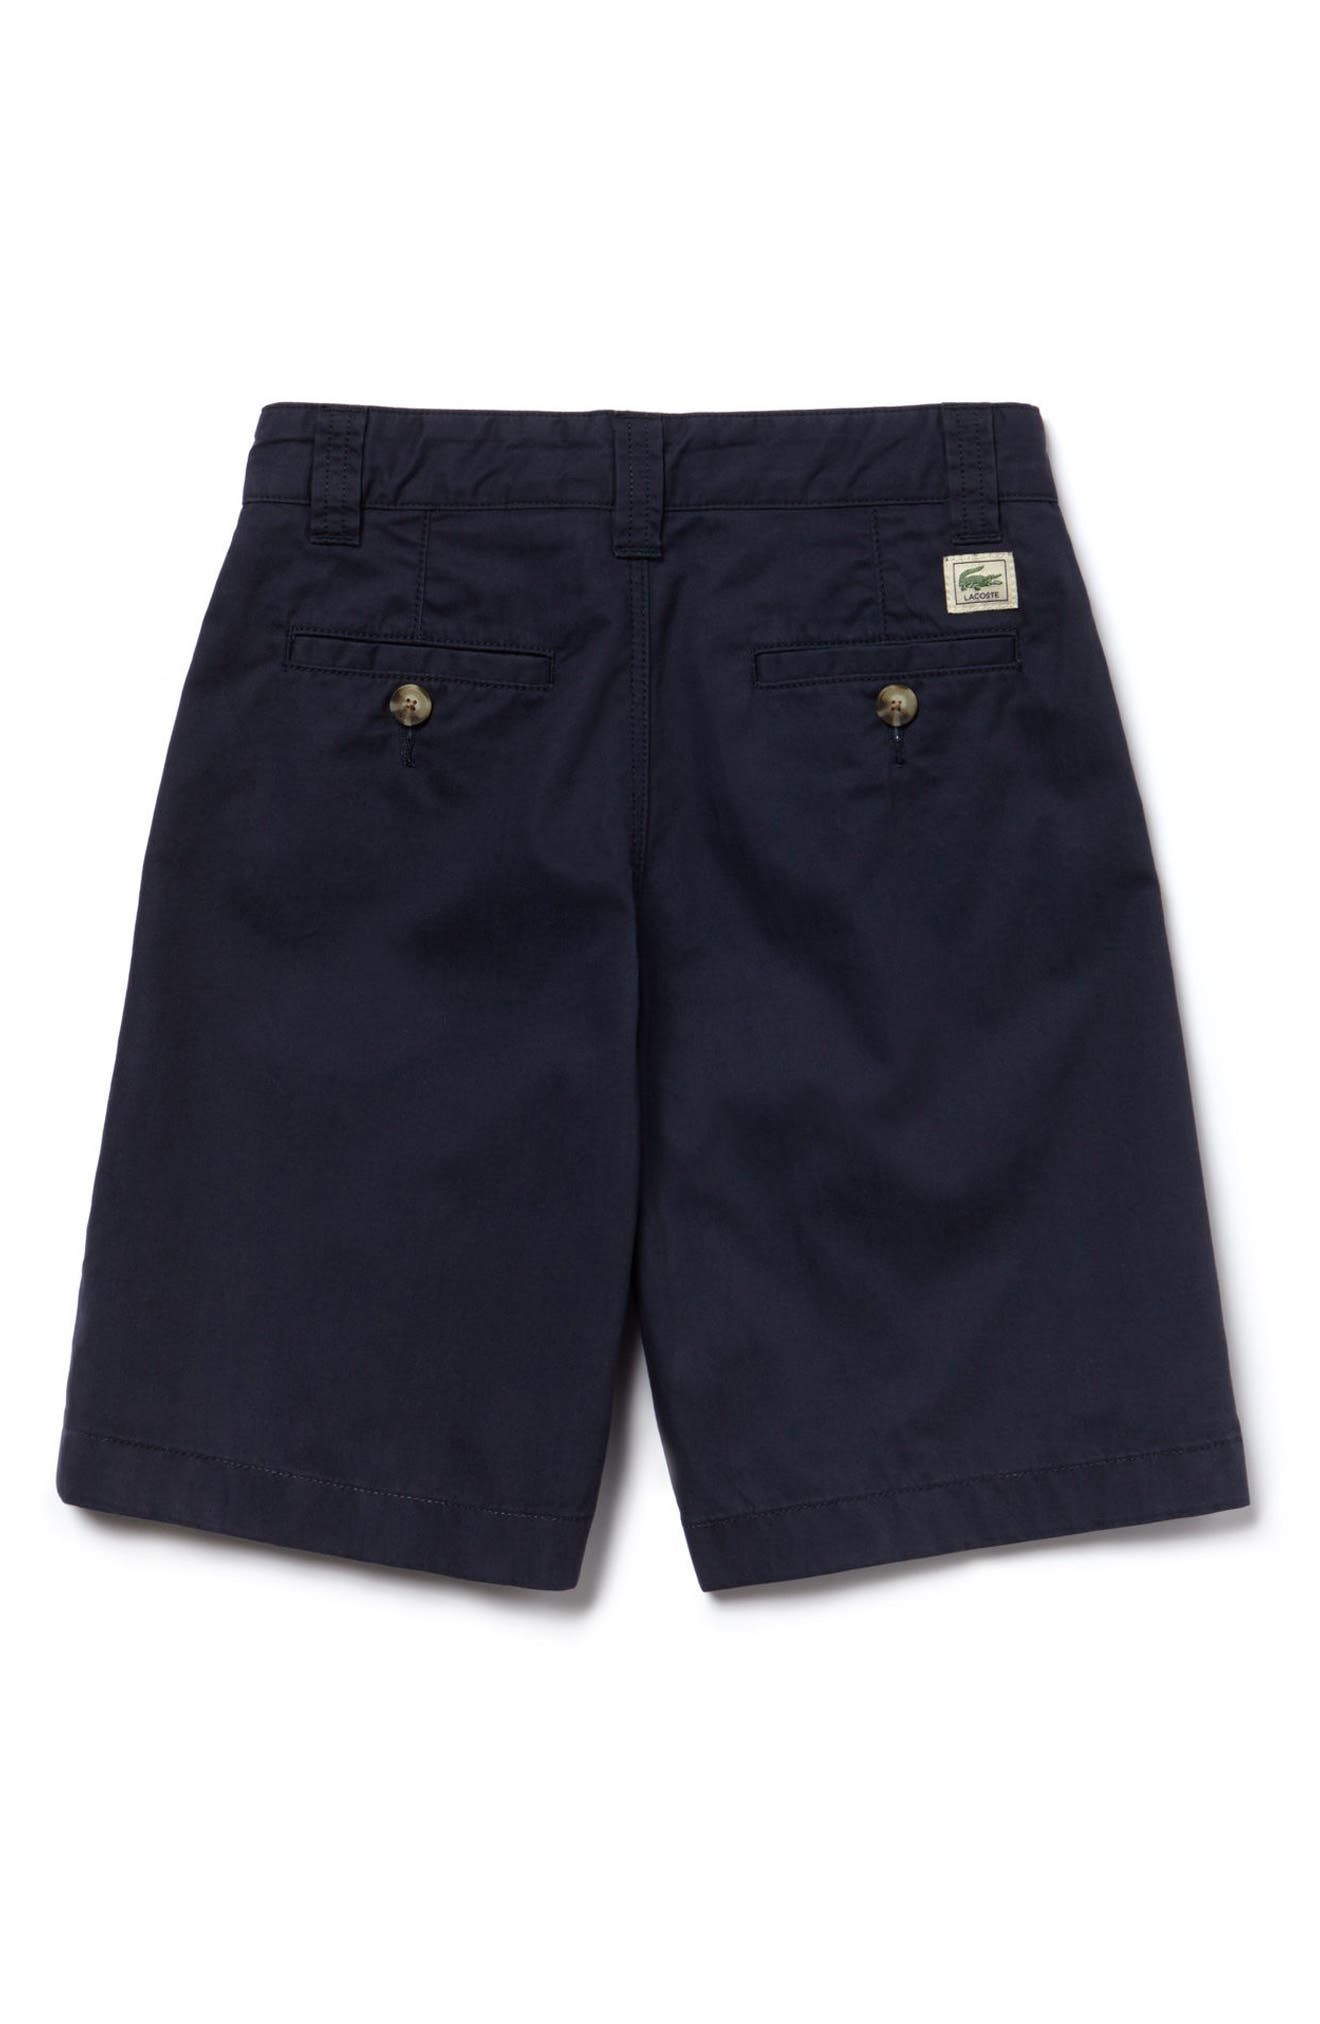 Classic Bermuda Shorts,                             Alternate thumbnail 2, color,                             Navy Blue